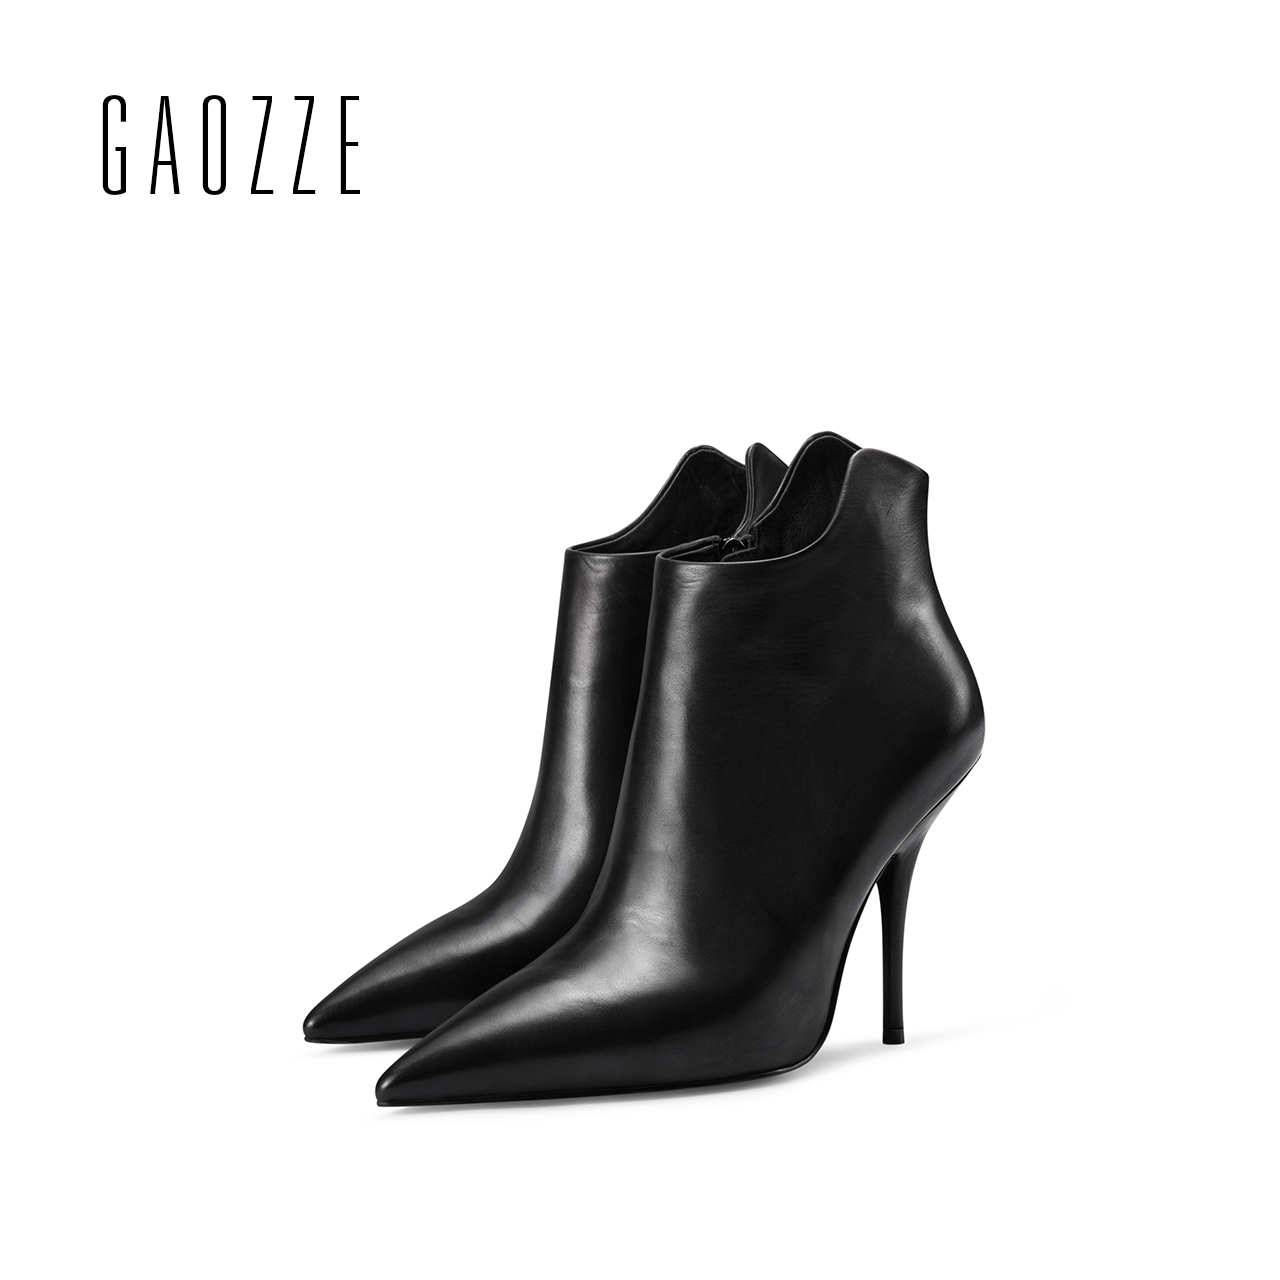 GAOZZE genuine leather women shoes sexy high heel boots 2017 pointed toe ankle boots for women side zipper ankle boots shoes xiangban handmade genuine leather women boots high heel ankle boots pointed toe vintage shoes red coffee 6208k11